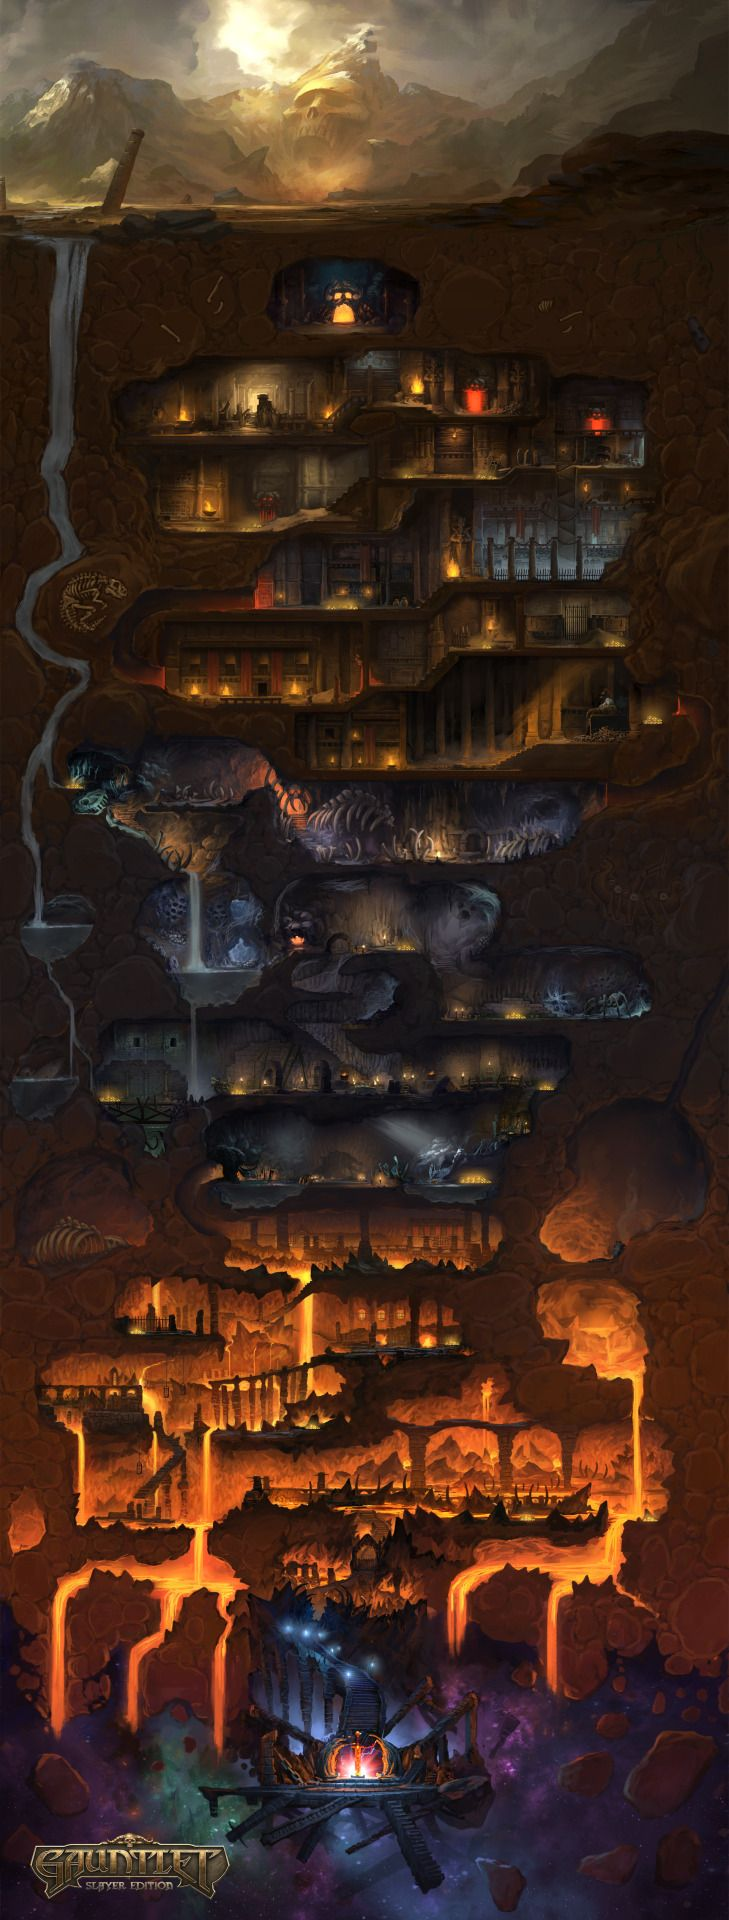 23/04 Possible area inspiration, showing the levels underground and how the environment changes as you go deeper. Reminiscent of my contextual research on Inferno (from Divine Comedy)